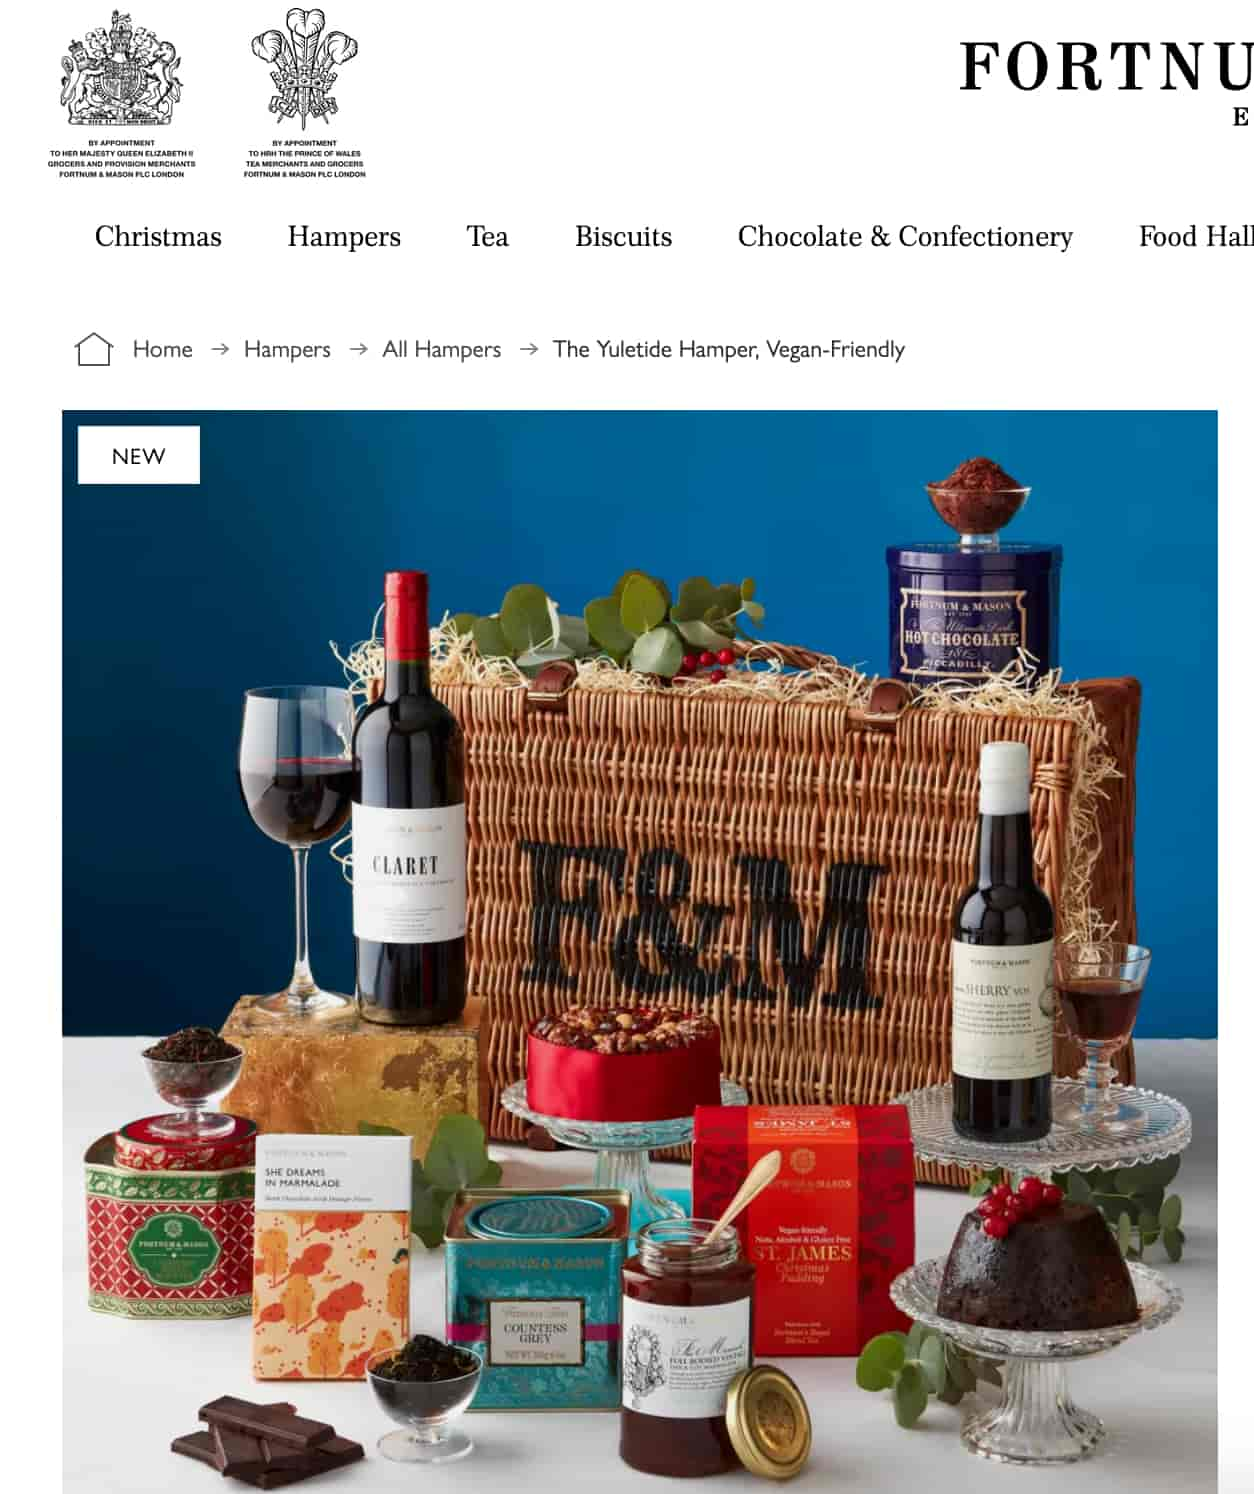 Fortnum & Mason hamper in the background with wine, jam, chocolate and tea in the foreground